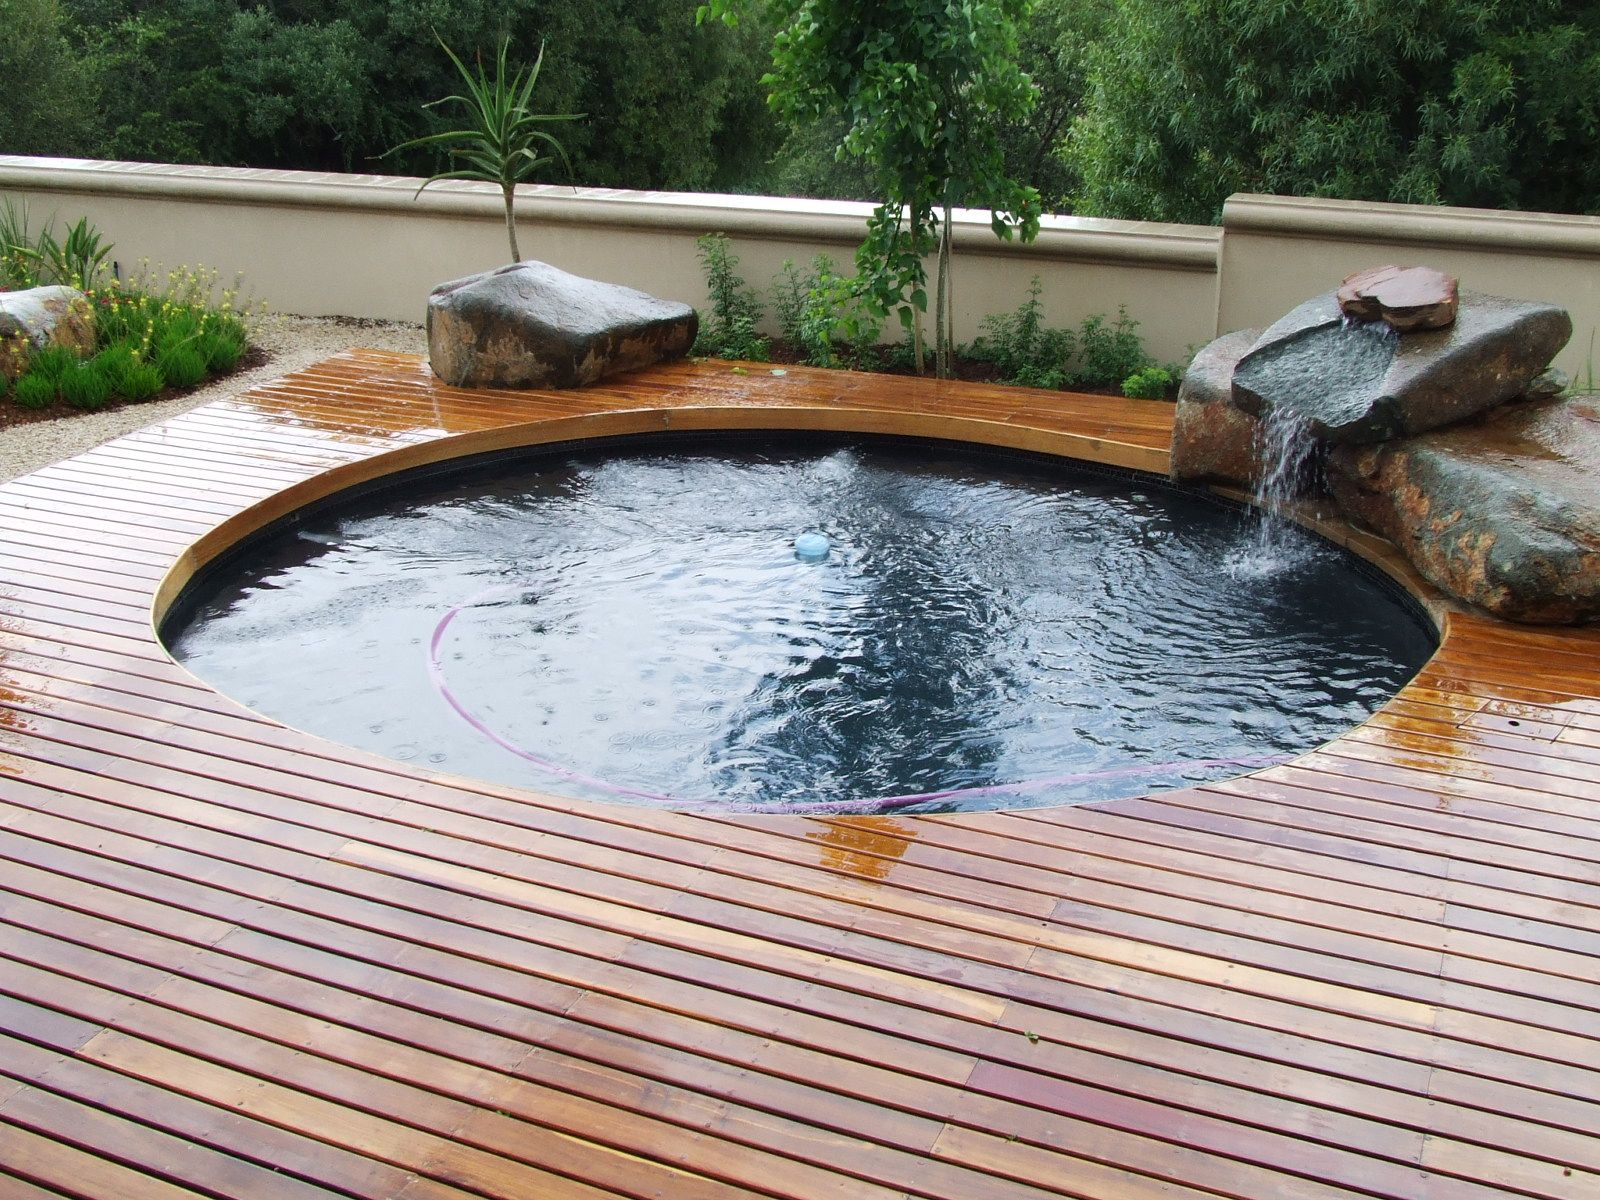 Small Pool Design Ideas find this pin and more on backyard pool designs Swimming Poolround Small Swimming Pool Designs For Small Yard With Wooden Deck Flooring Plus Stone Water Feature Small Pool Design To Turn The Backyard